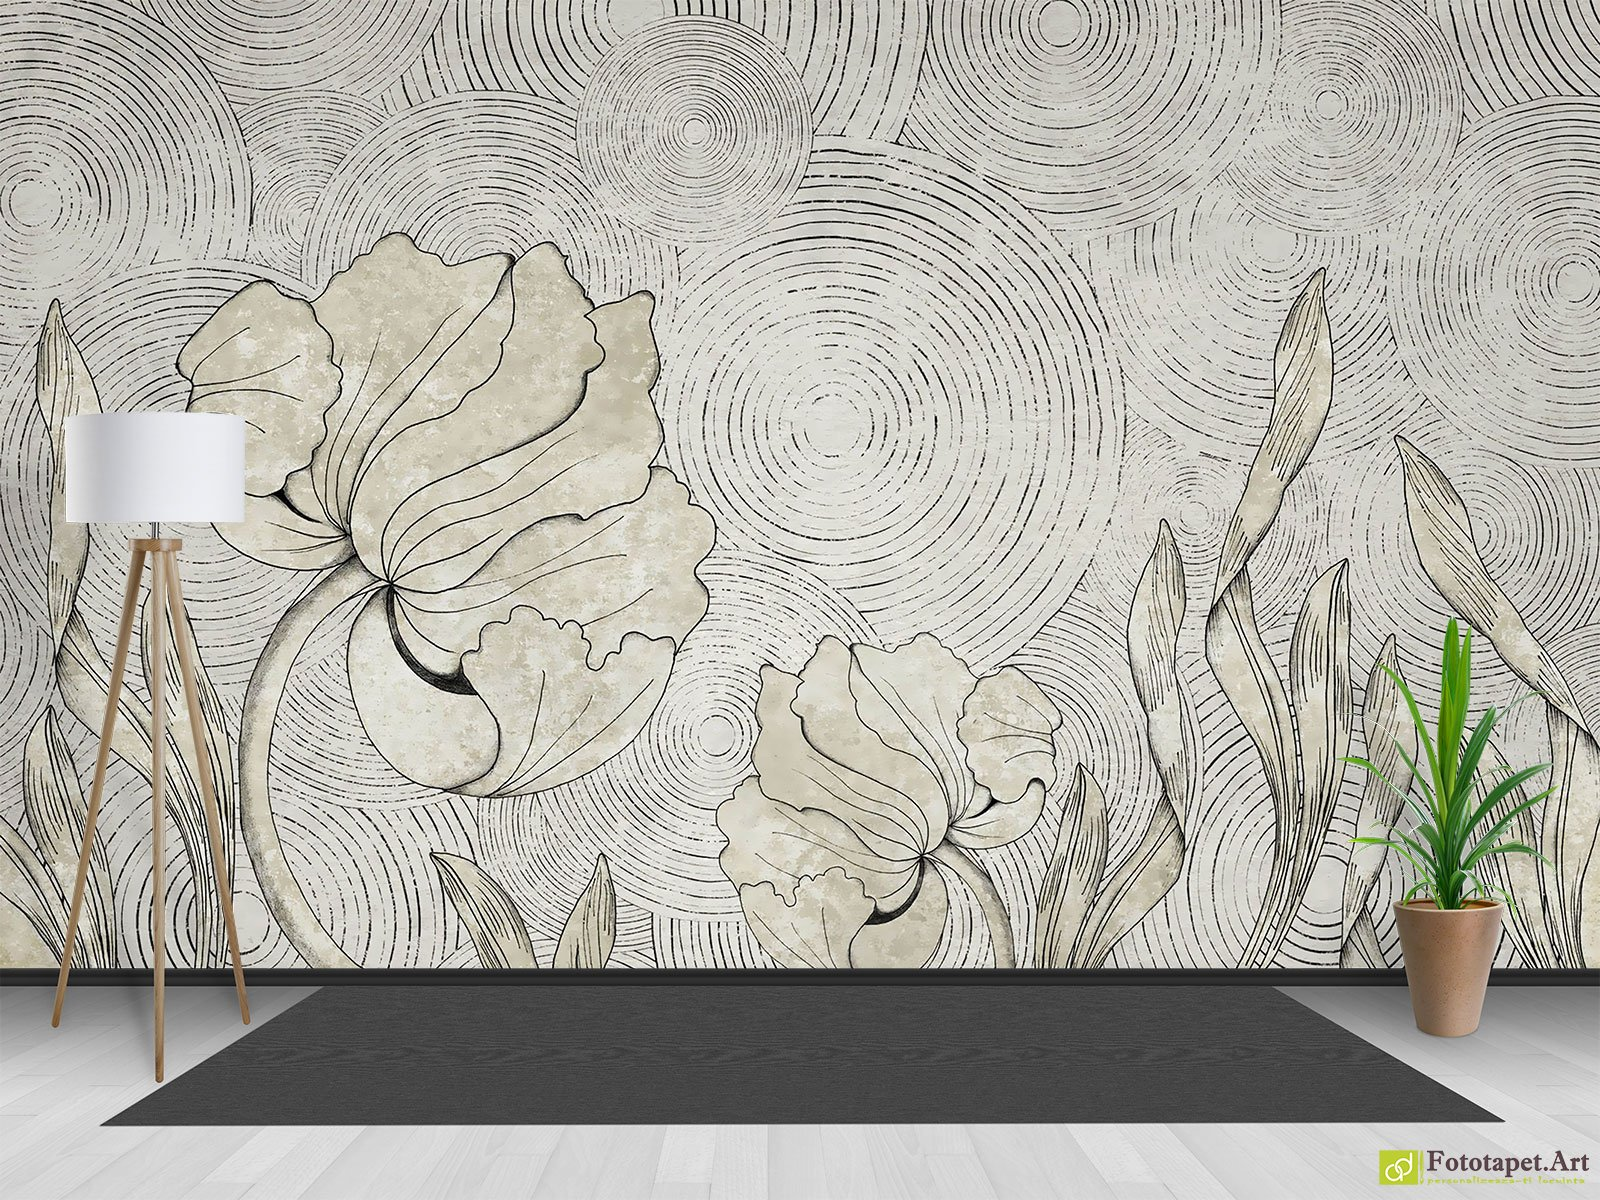 Retro Wallpaper Vintage Wall Murals Flowers And Circles In Gray